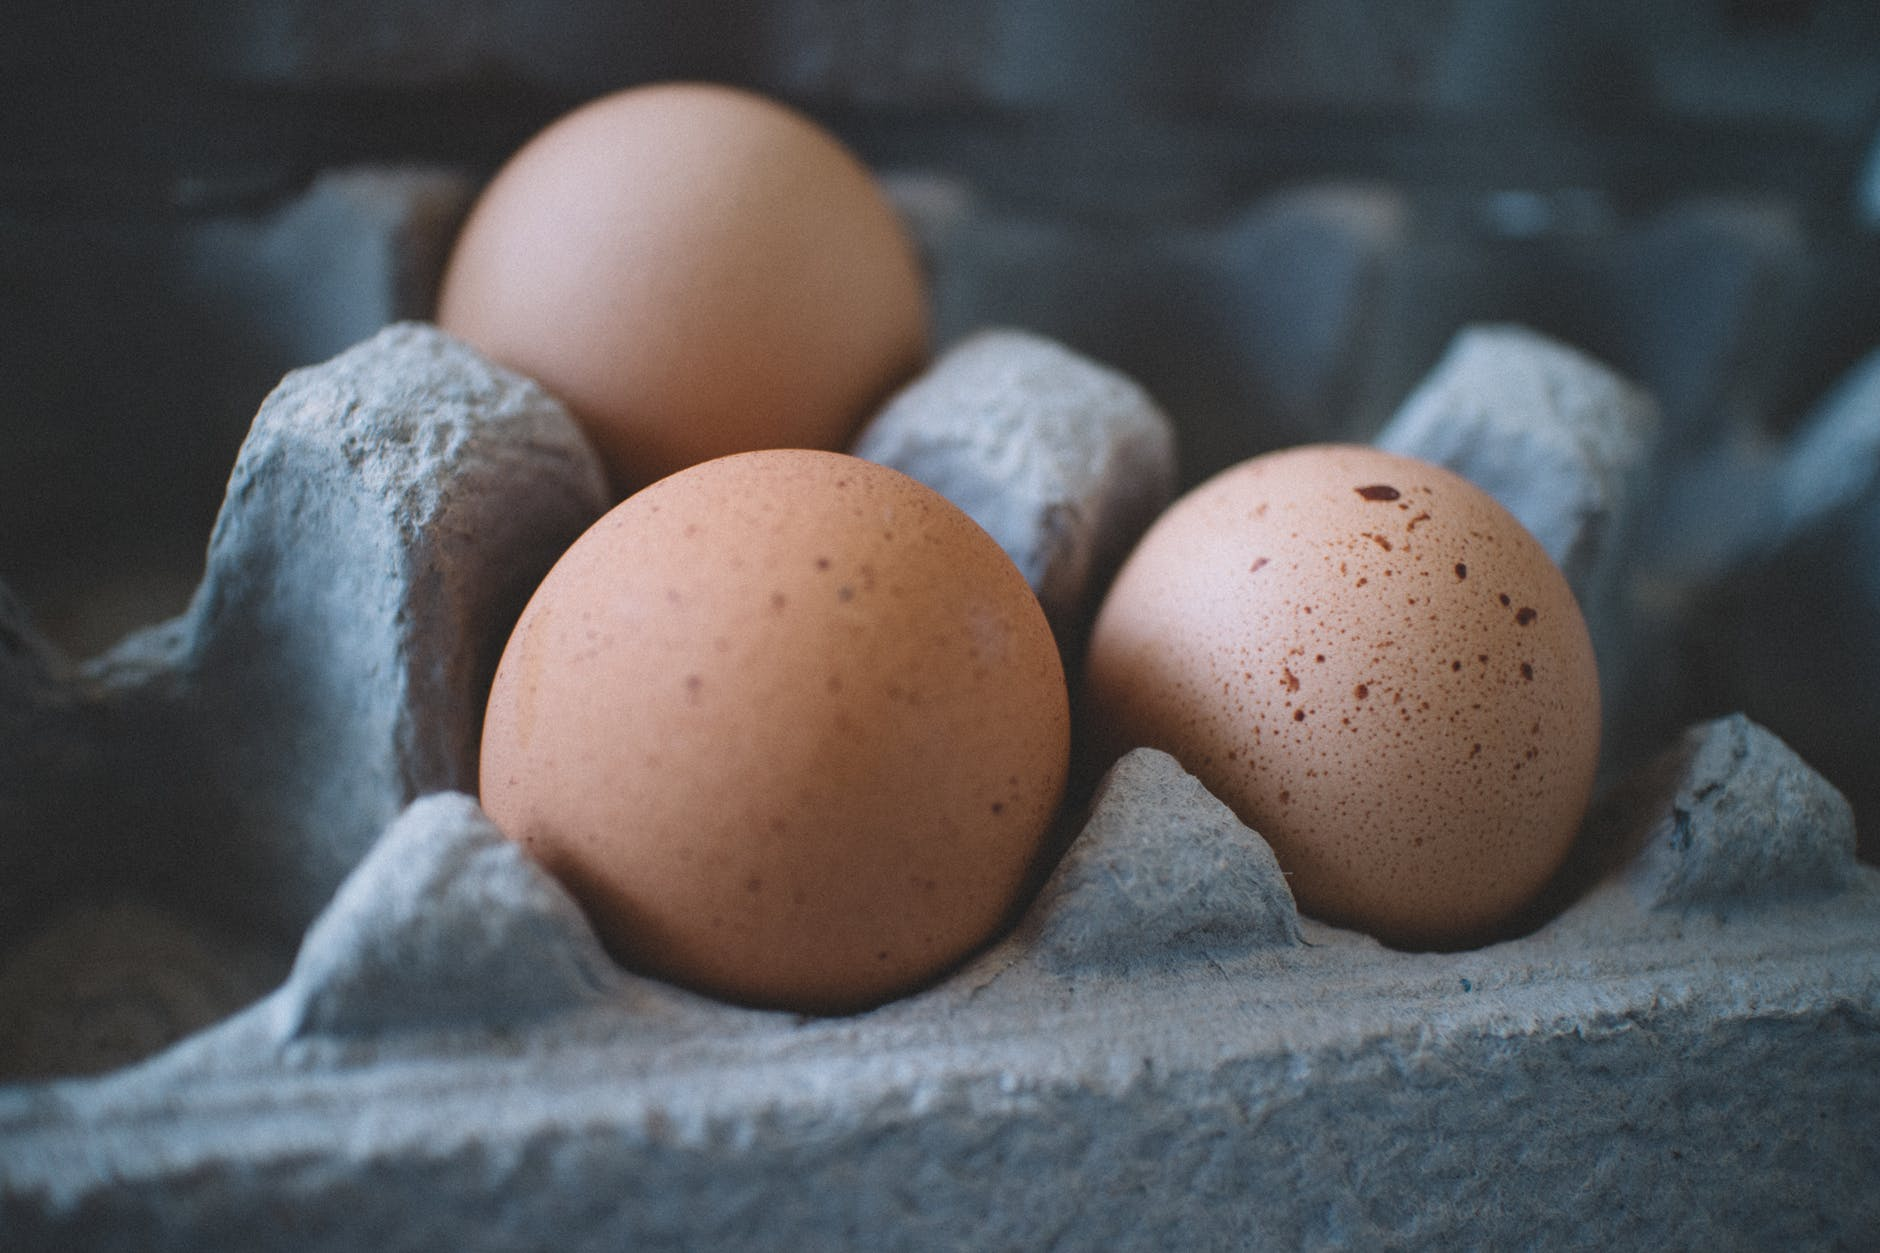 selective focus photo of three eggs on tray